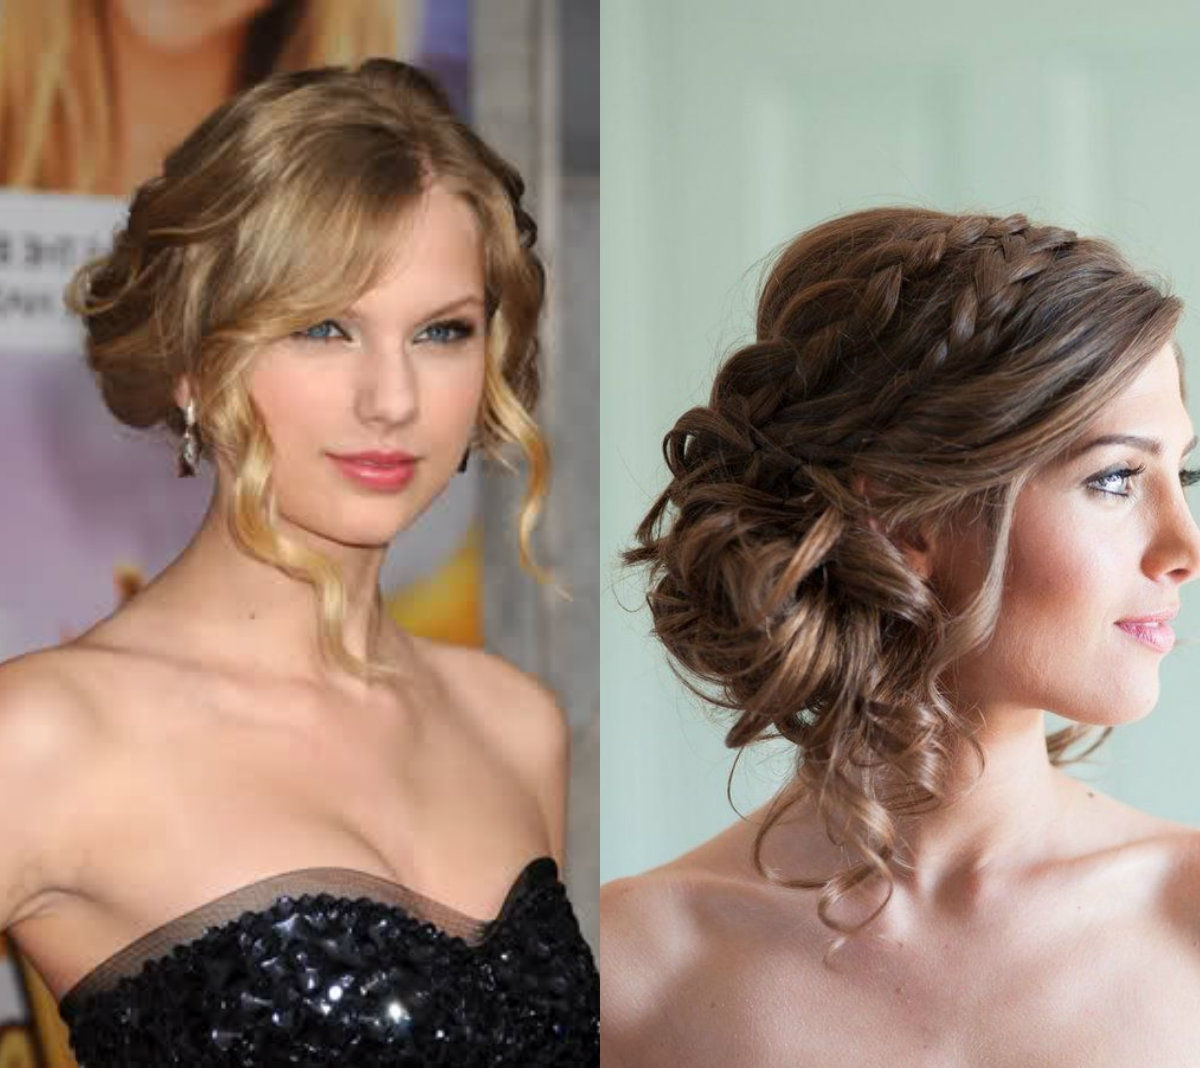 Fabulous Hairstyles For Strapless Dresses | Trends4us With Regard To Updo Hairstyles For Strapless Dress (View 6 of 15)